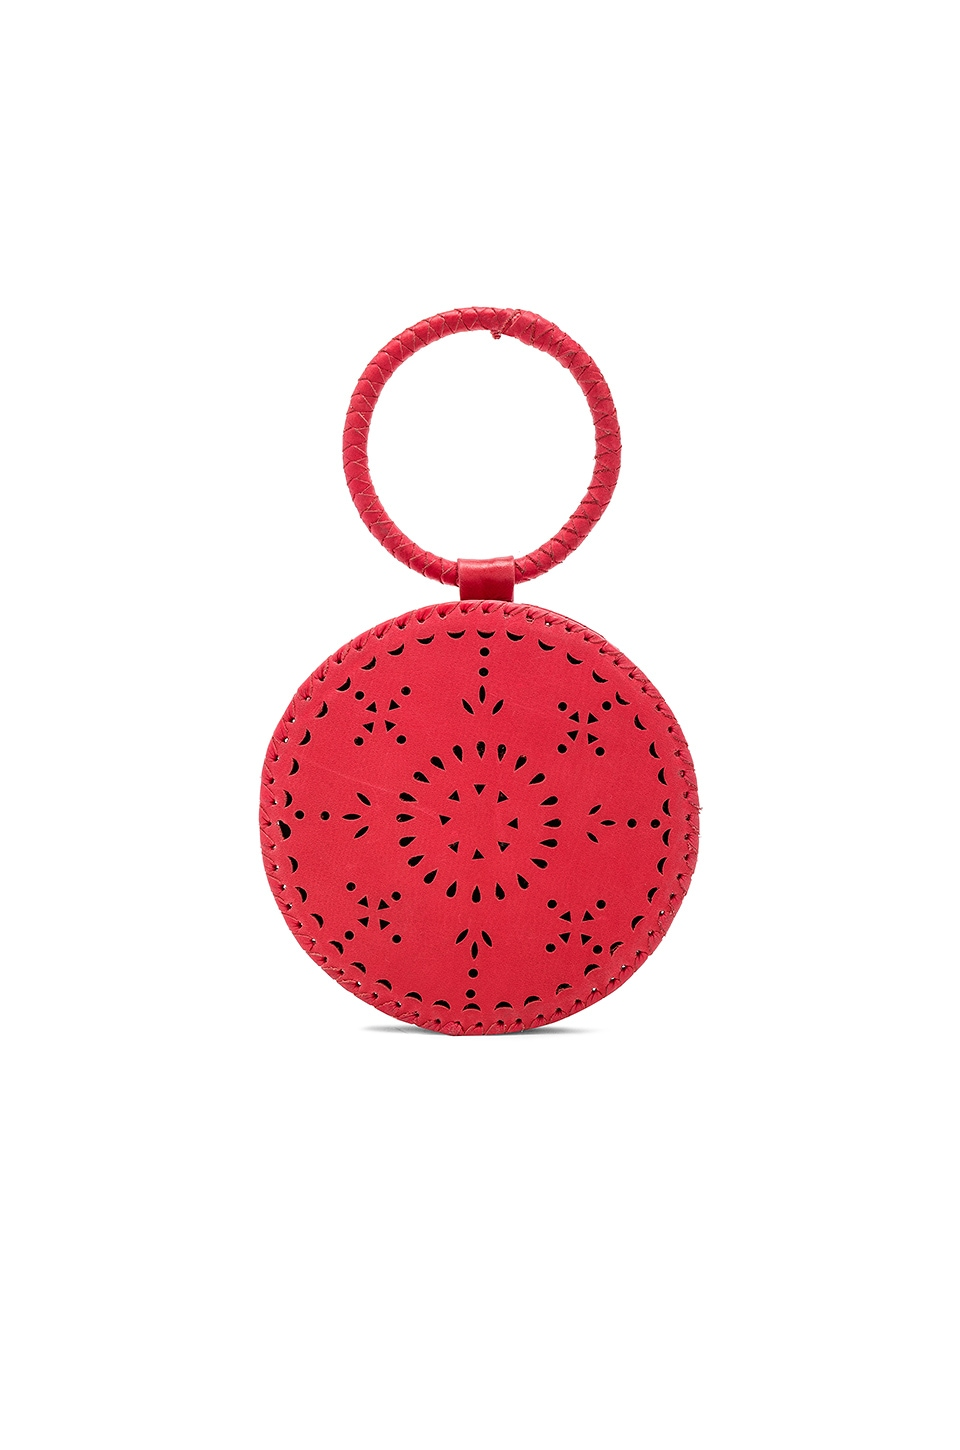 Cleobella Florence Mini Circle Bag in Fire Red